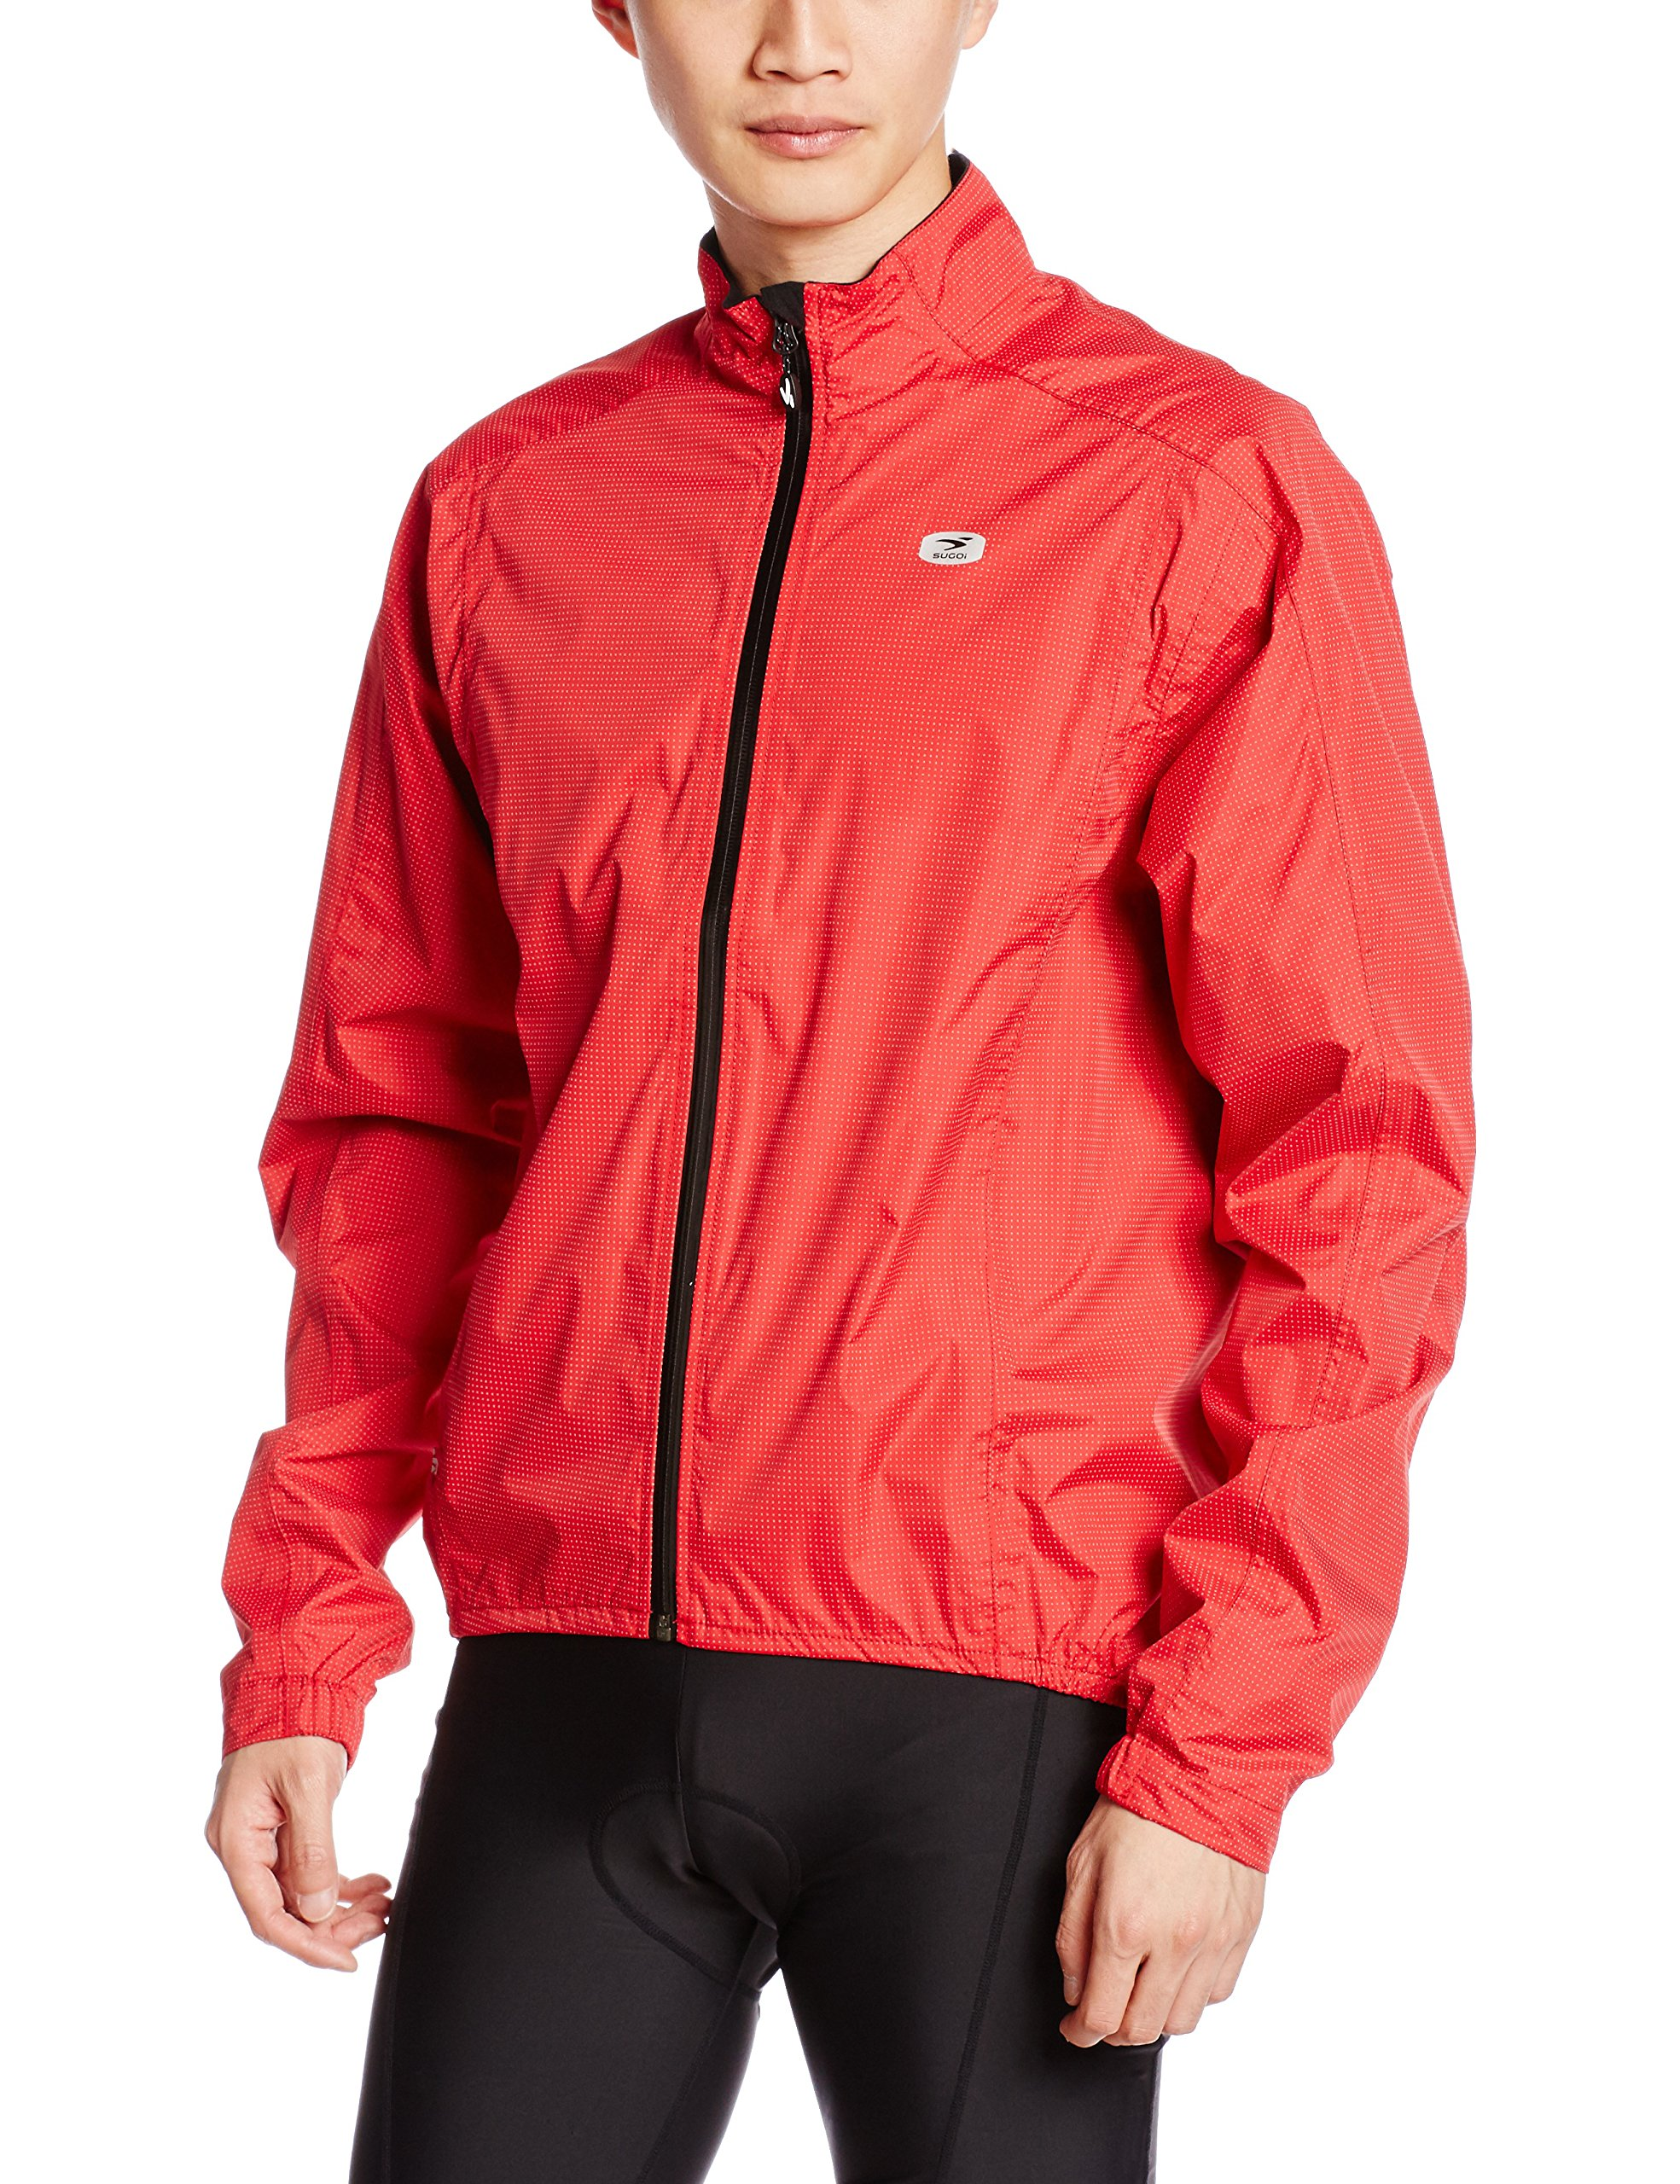 Sugoi Men's Zap Bike Jacket, Chili Red, Small by SUGOi